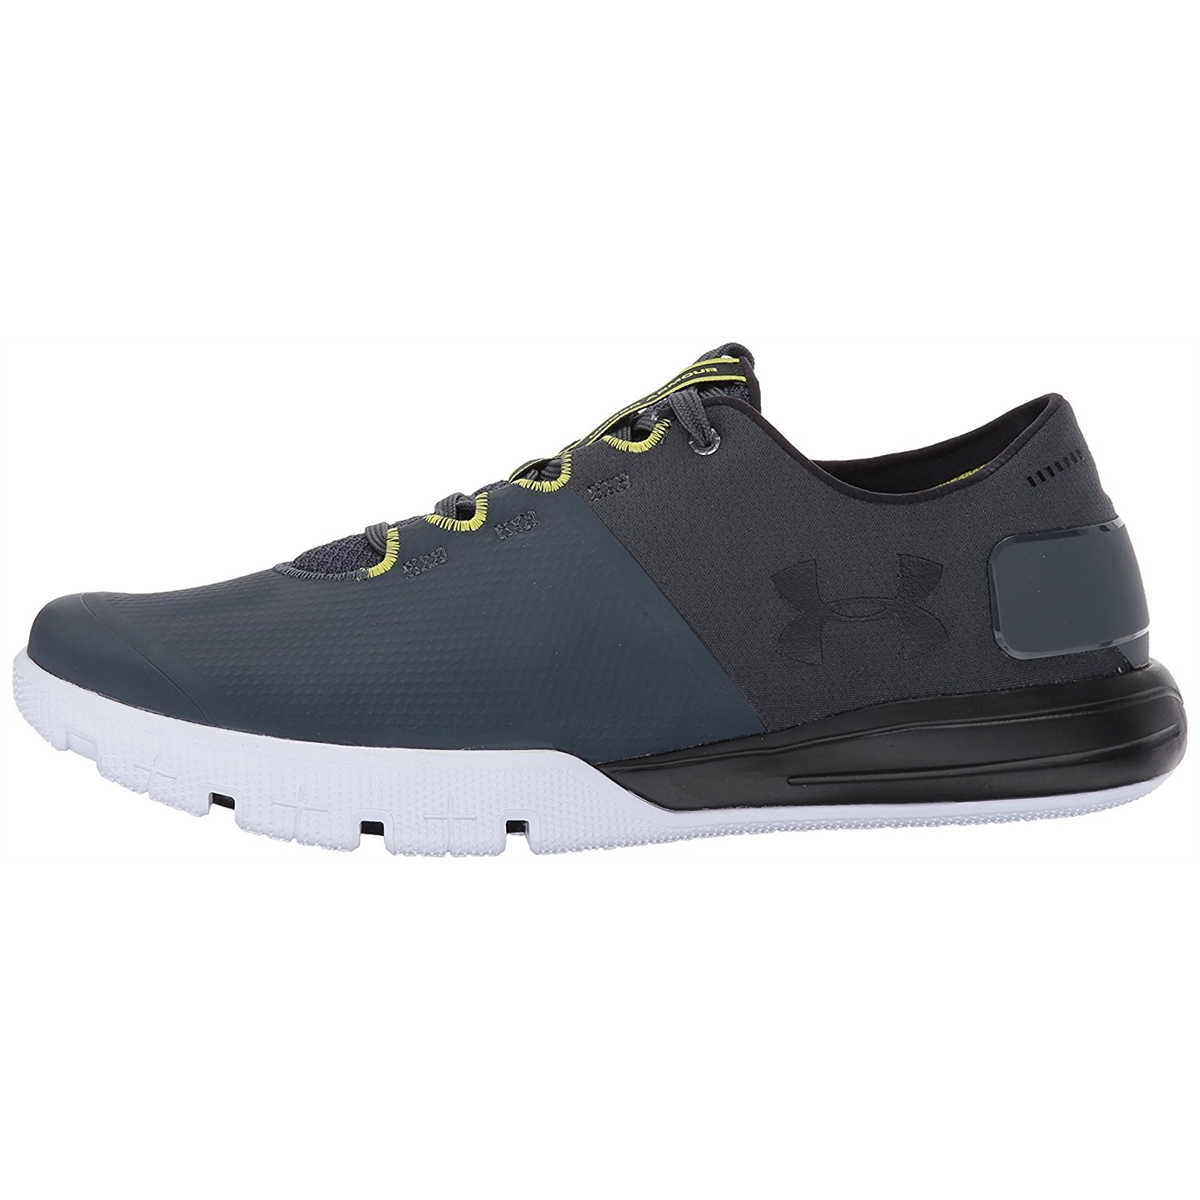 Under Armour M Charged Ultimate Tr 2.0 Training Shoes